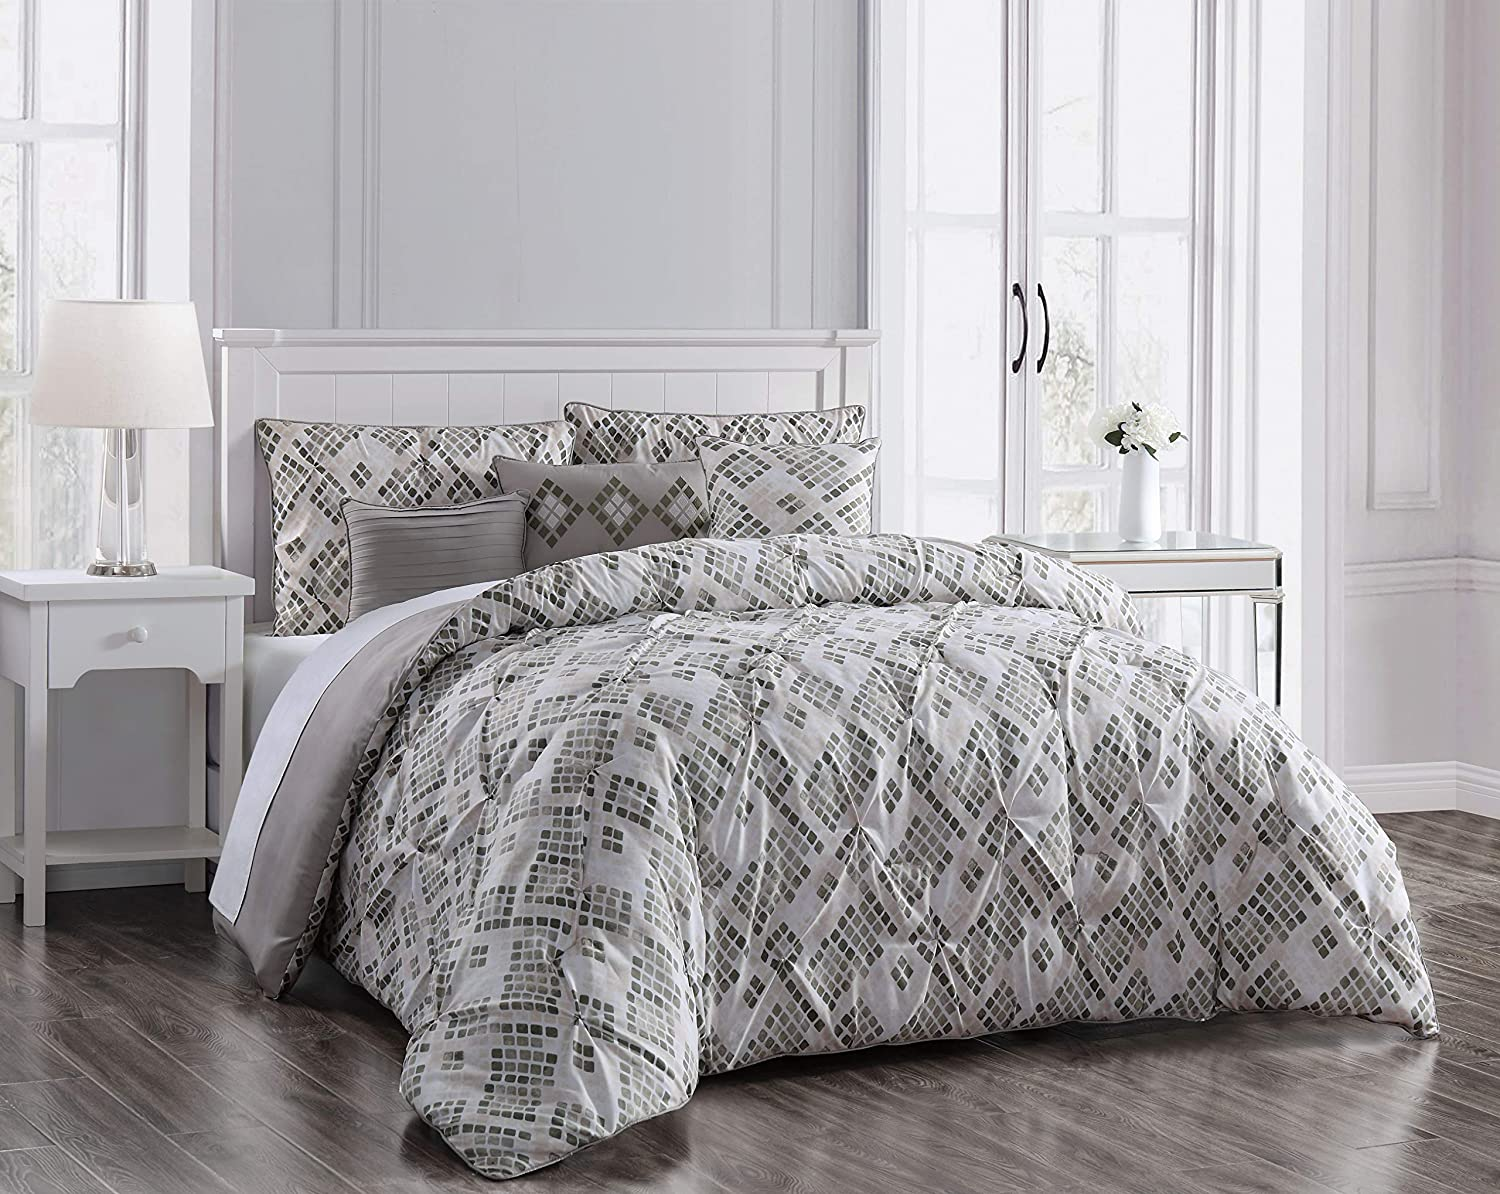 Geneva Home Fashion Germaine Comforter Set Queen Grey